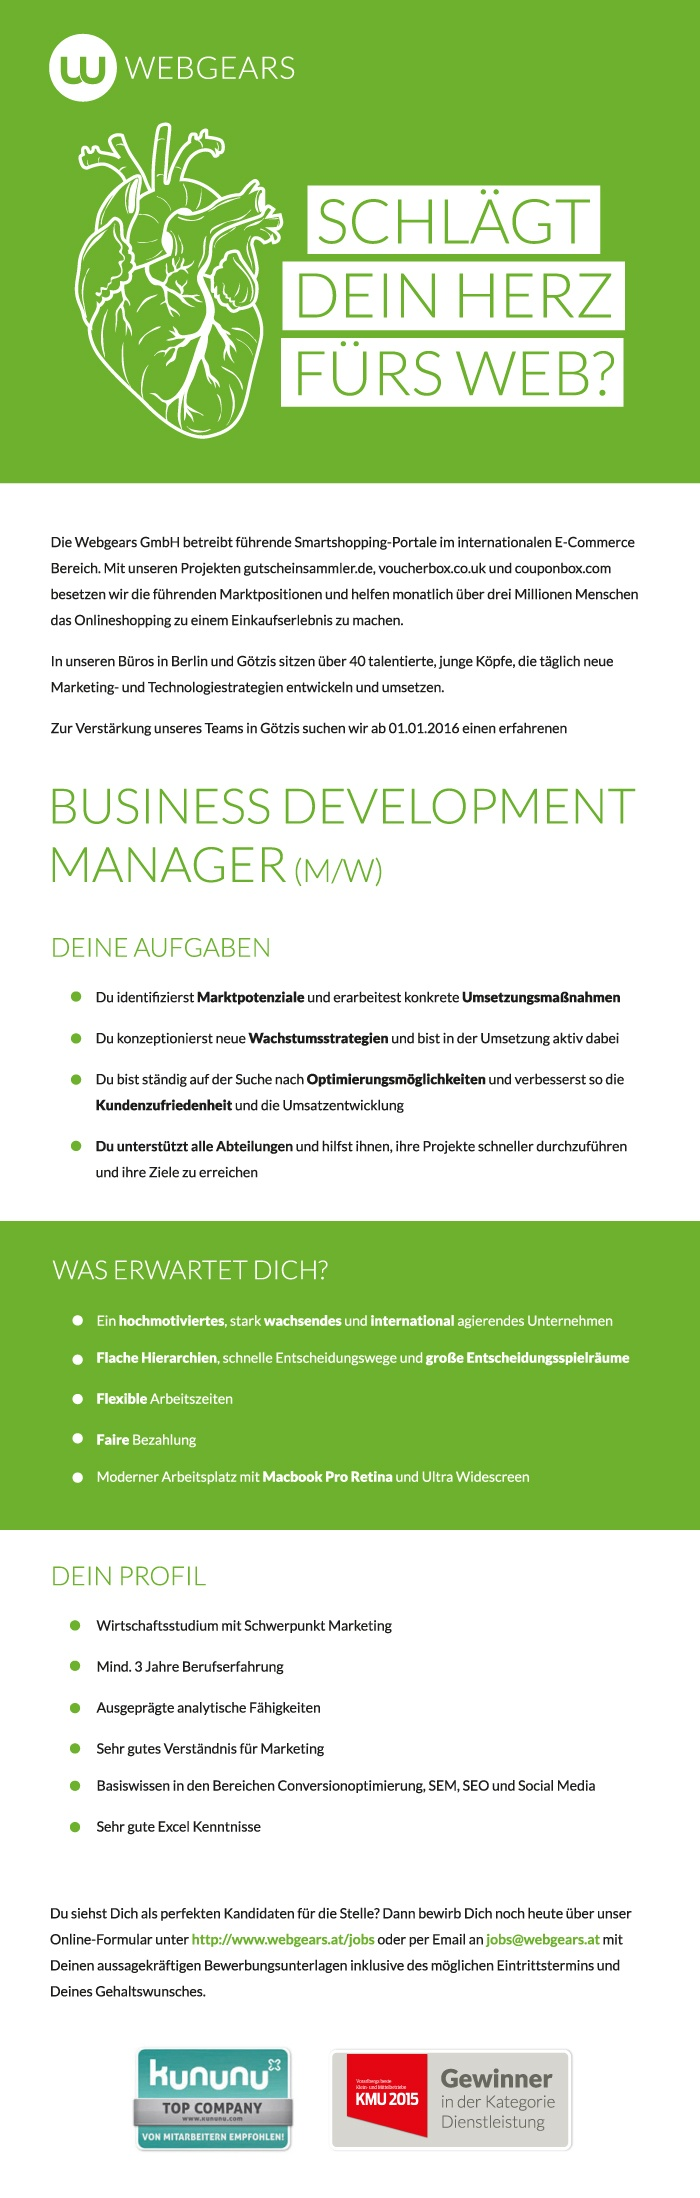 business-development-manager-wm